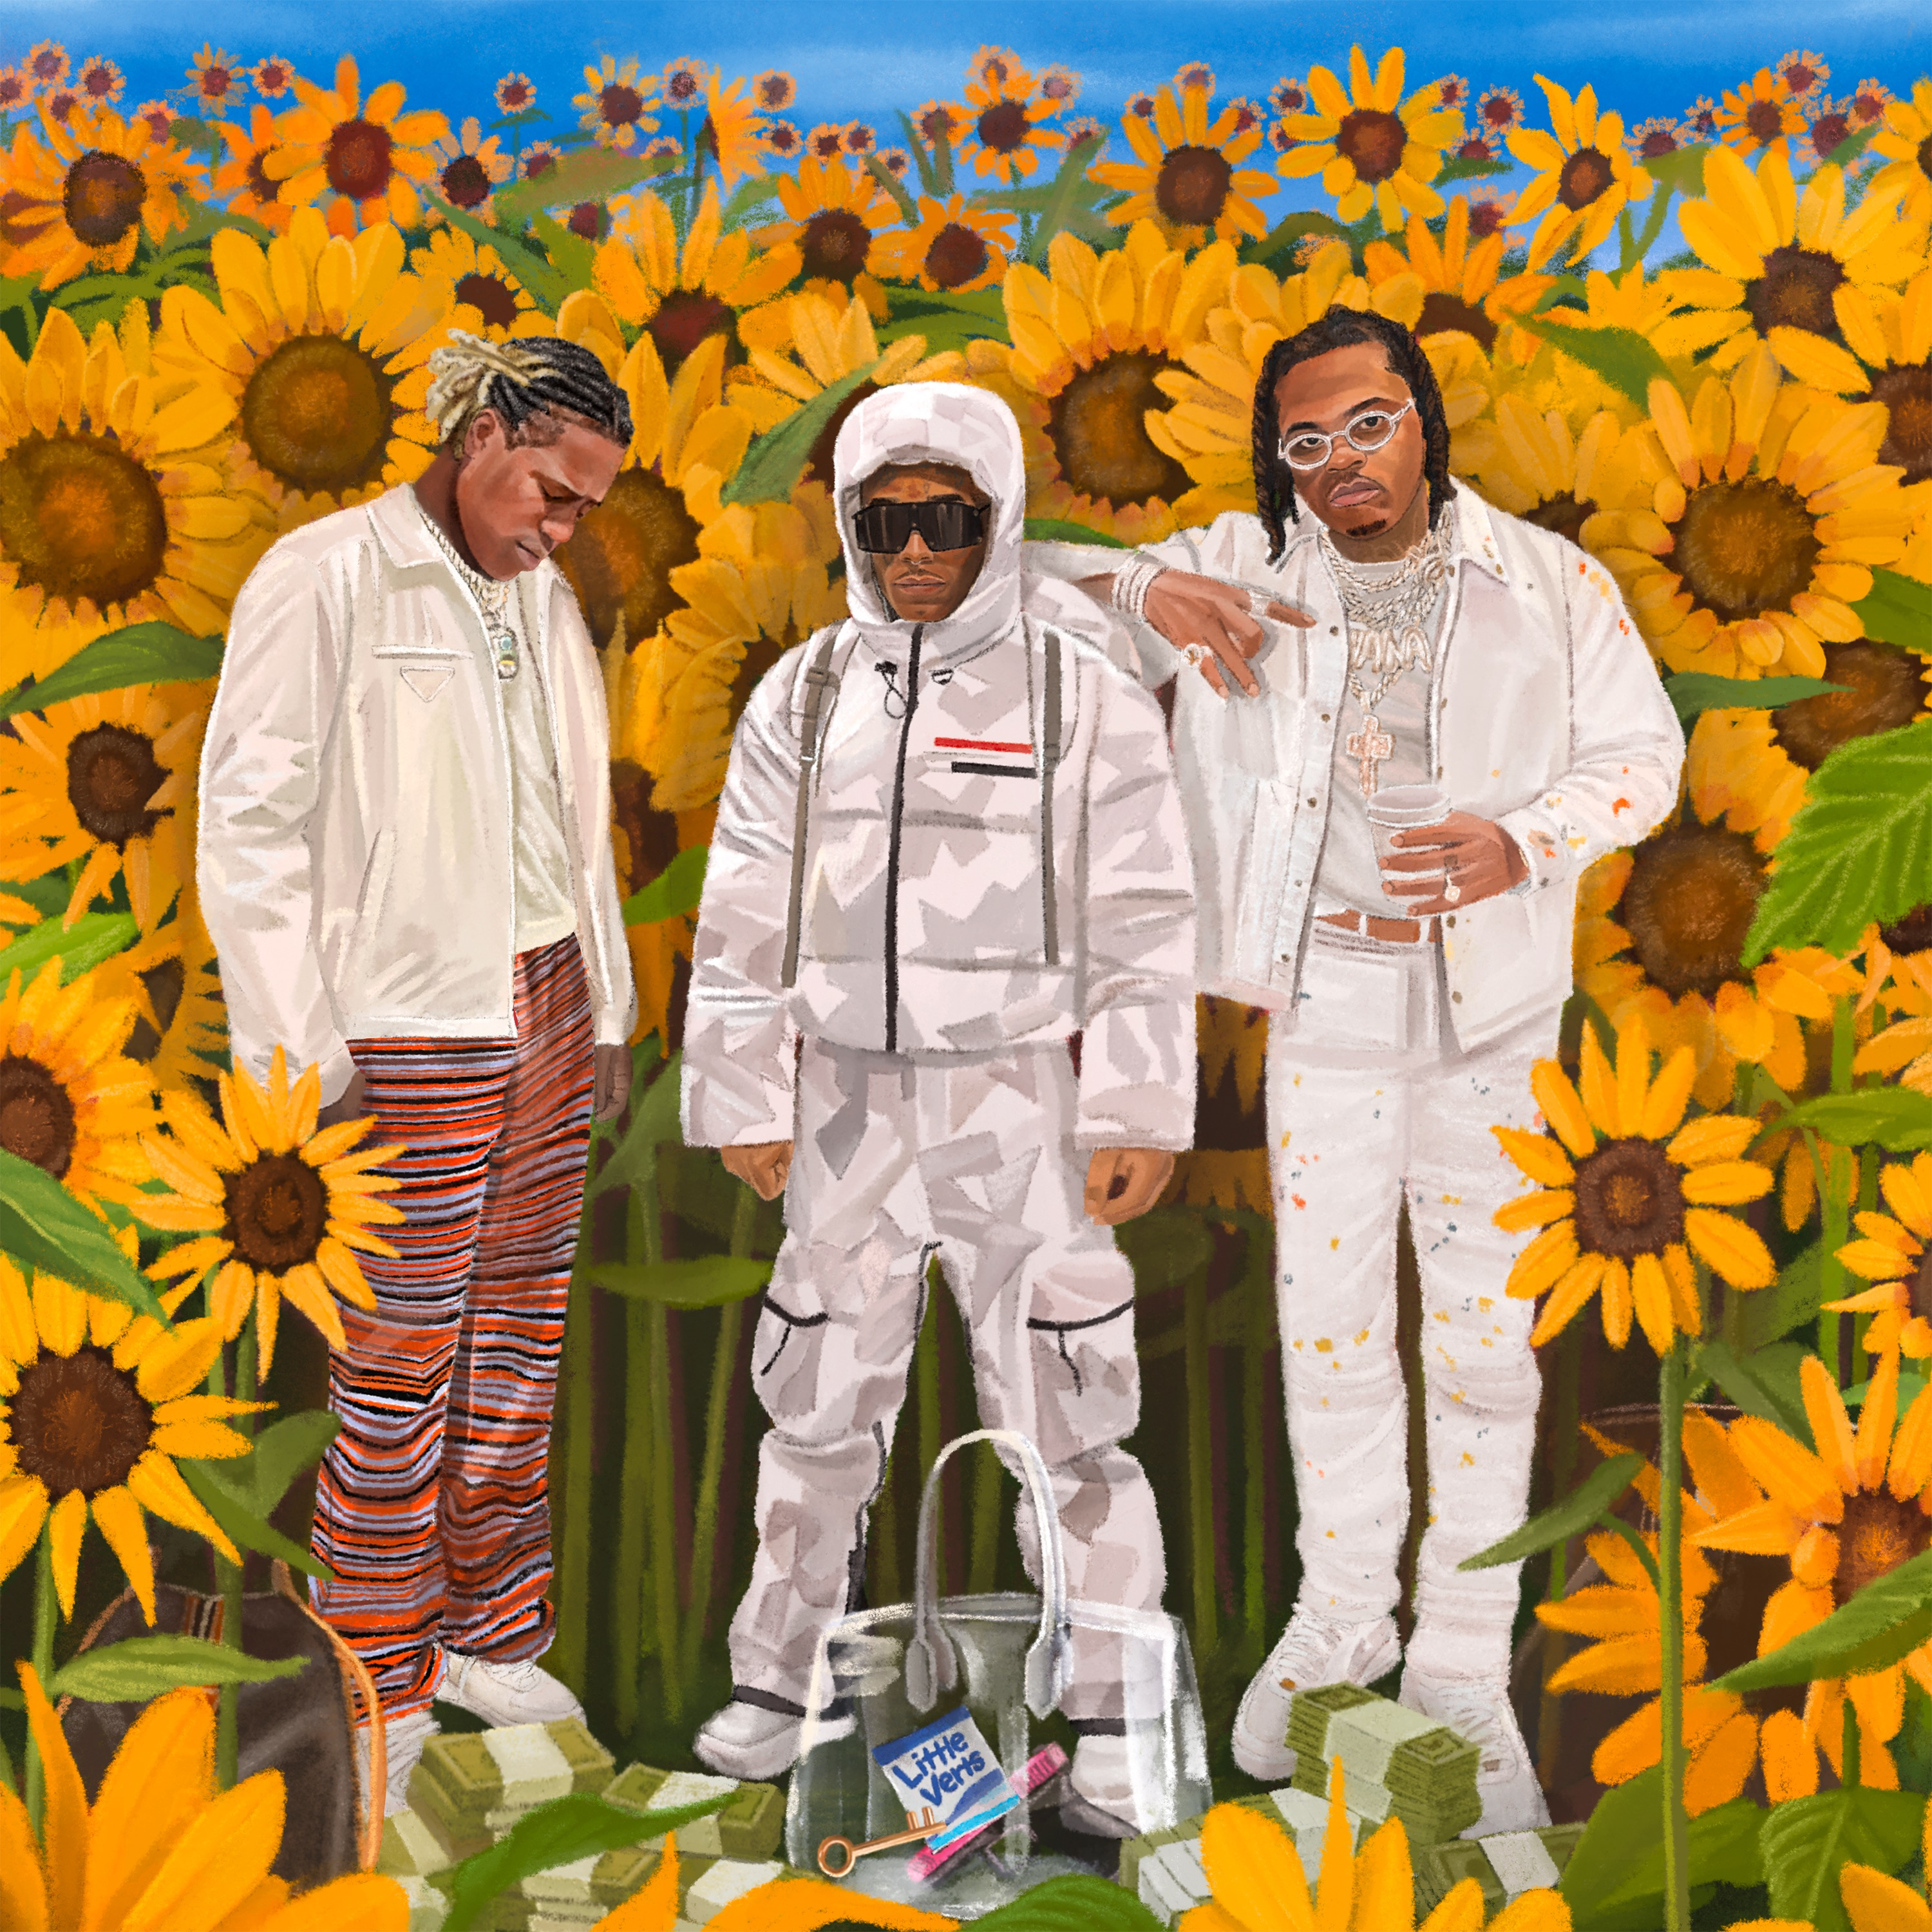 Art for His & Hers (Clean) by Internet Money ft Don Toliver, Lil Uzi Vert & Gunna